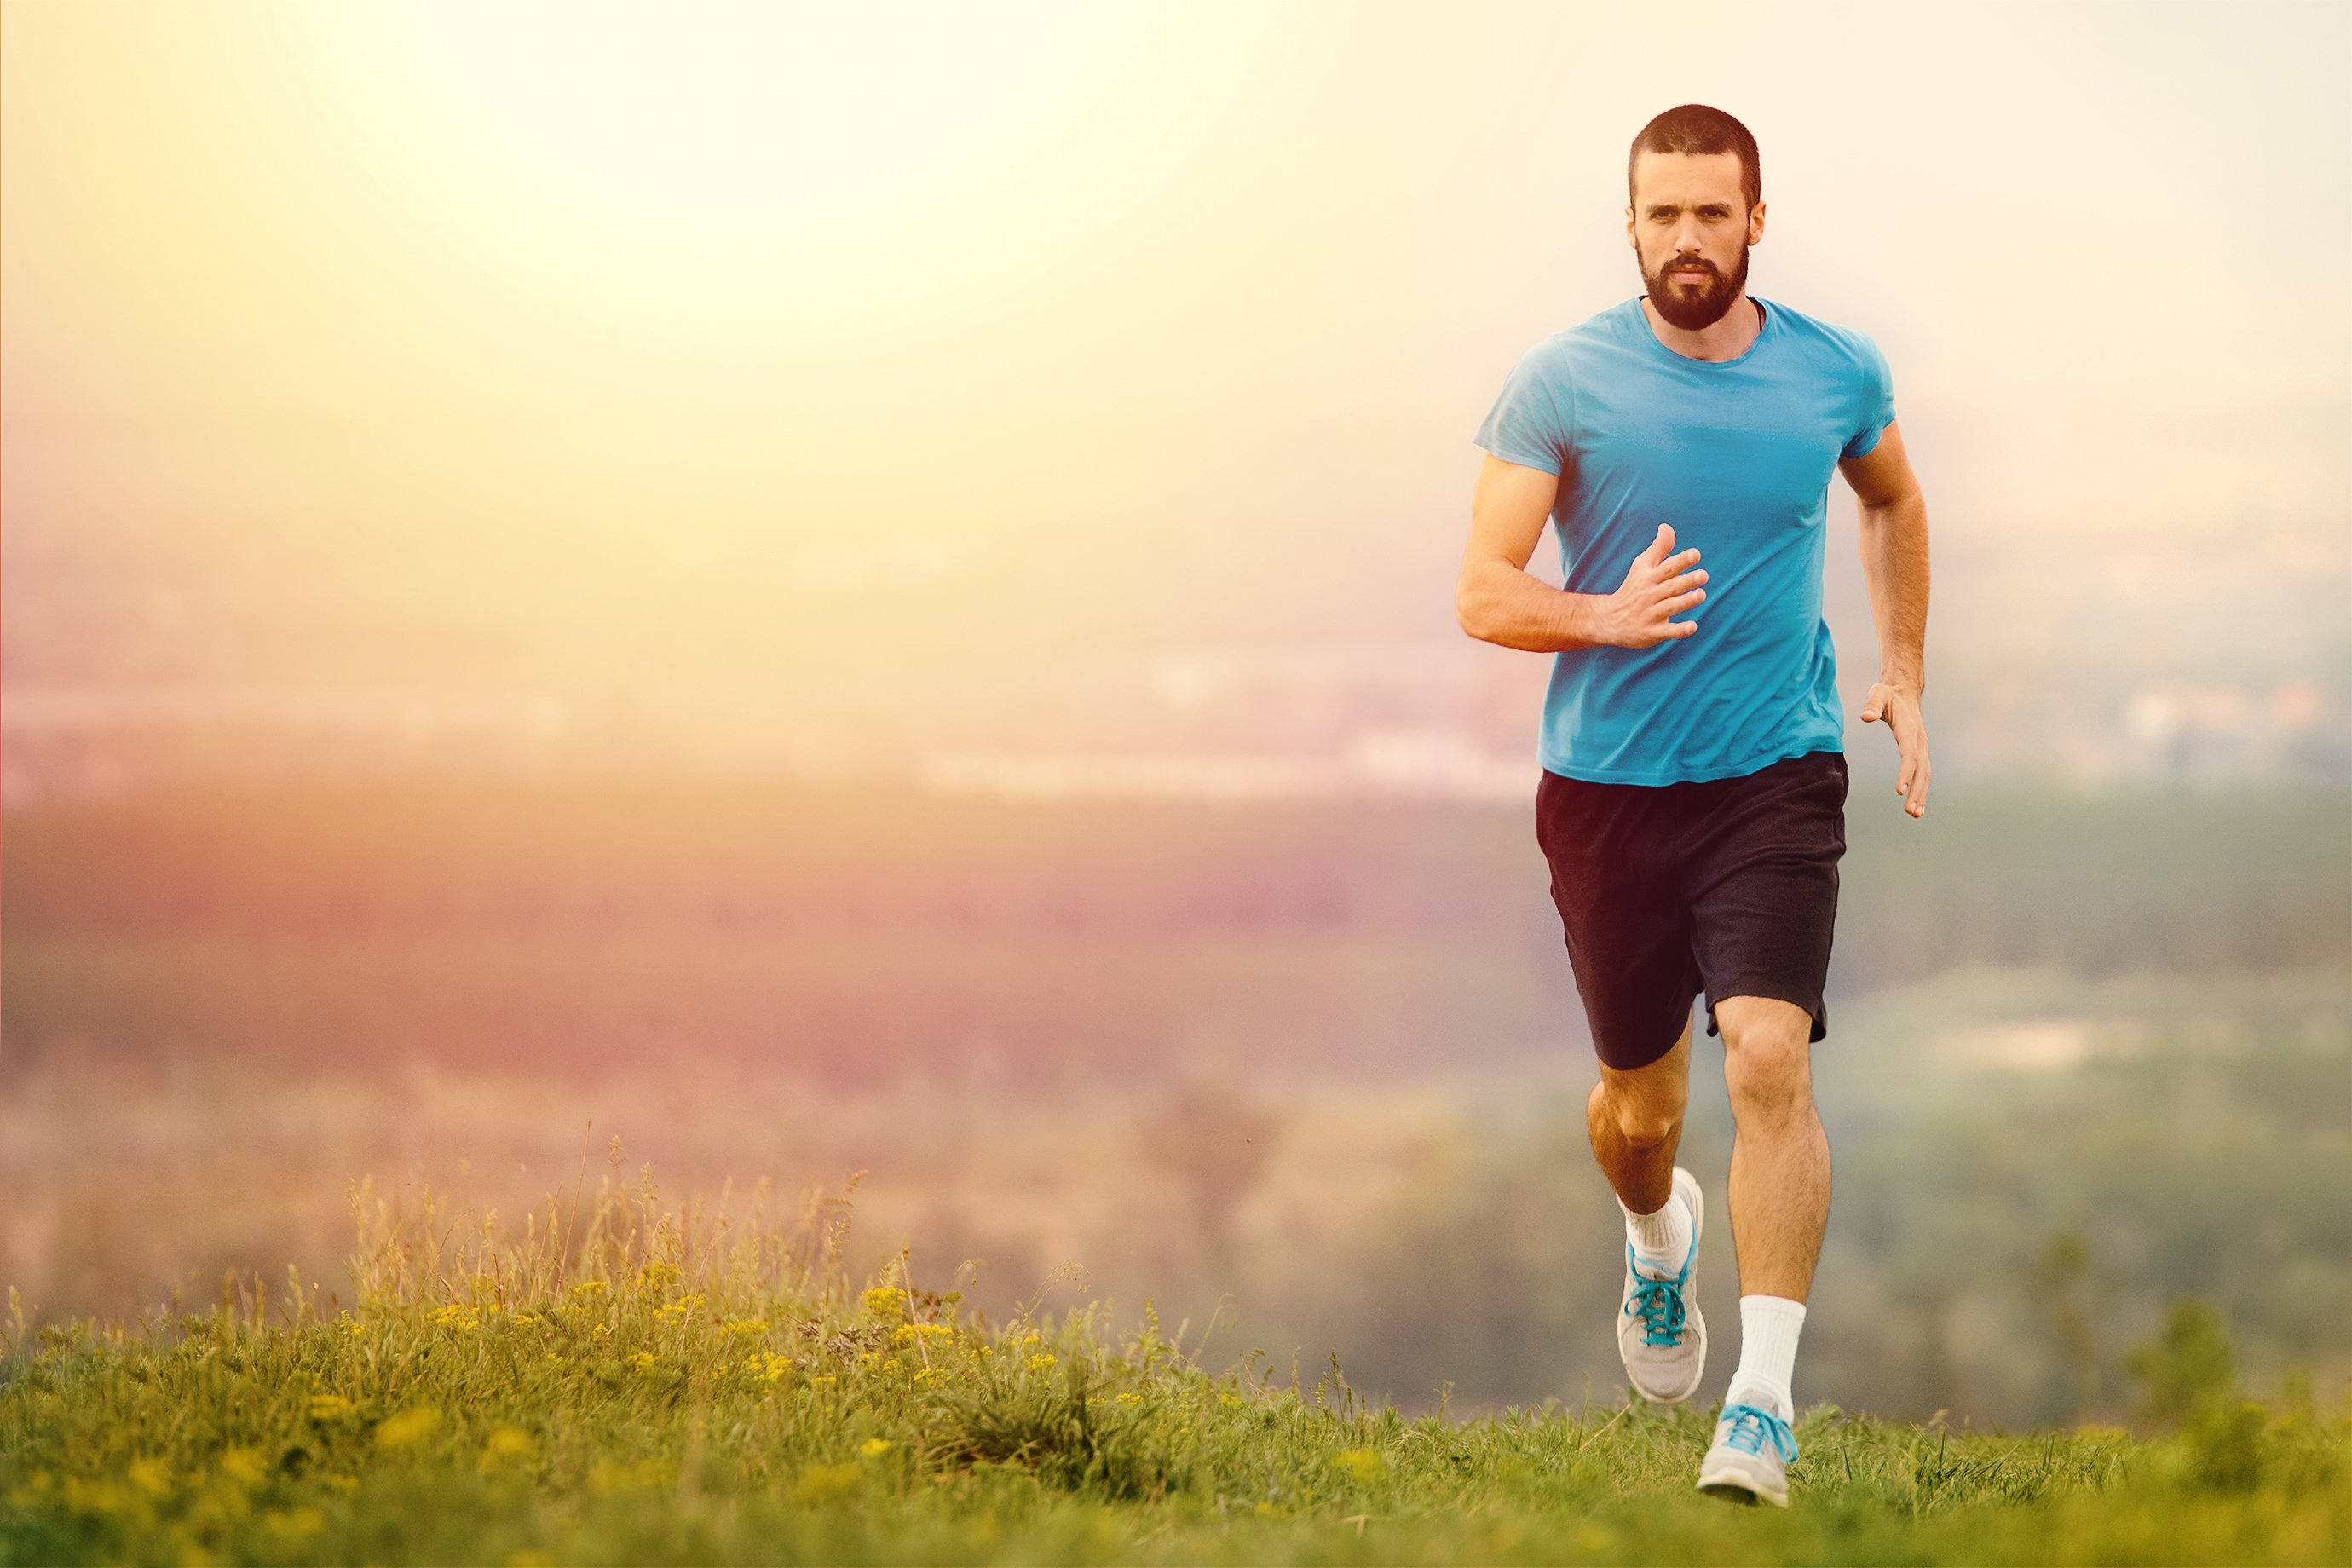 The importance of exercise on mental health